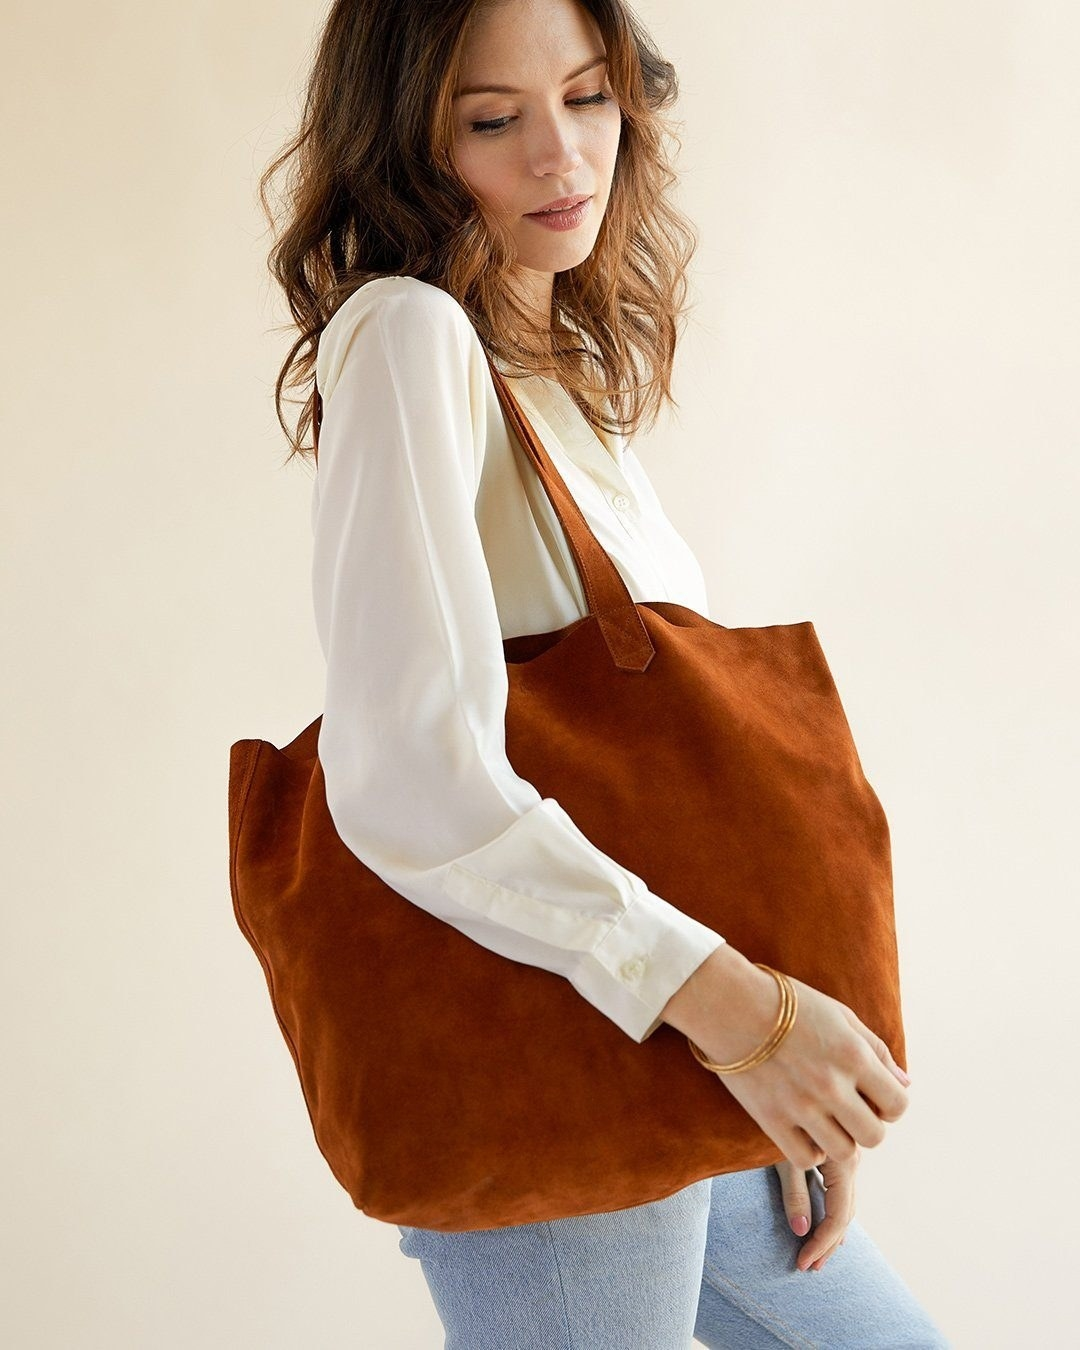 Model holding a brown suede oversized tote bag